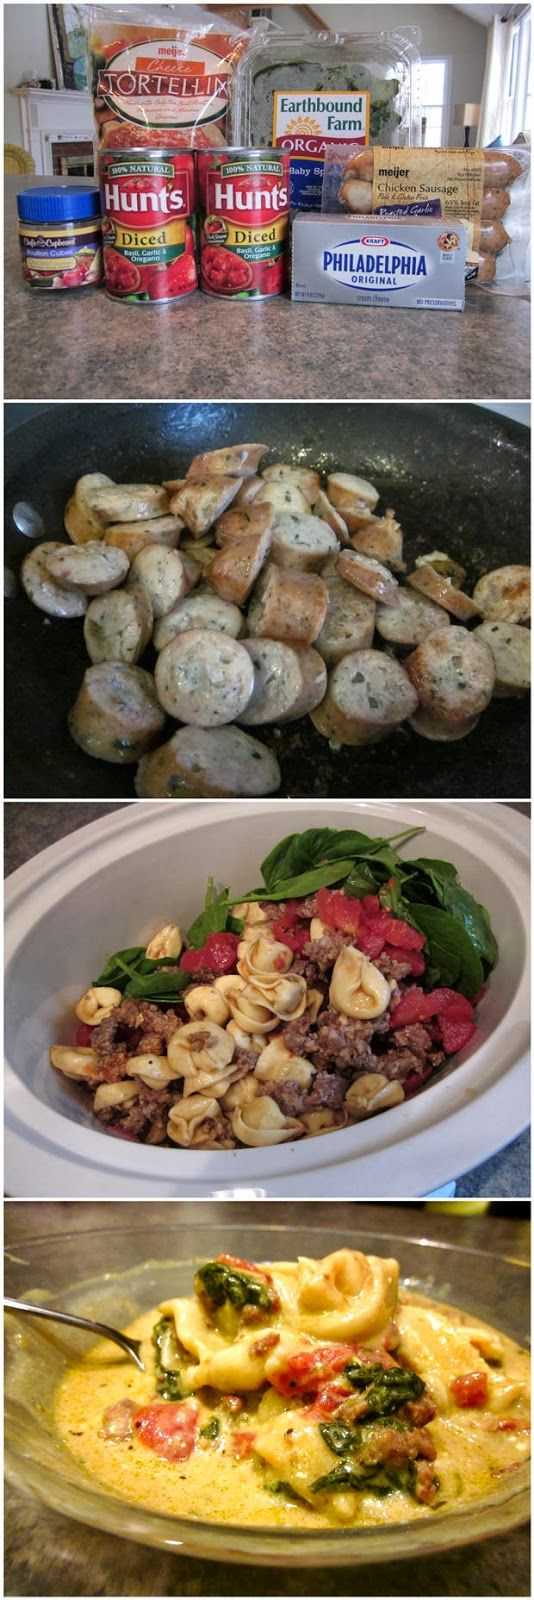 Red Star Recipe: Crockpot Cheese Tortellini      1 (19oz) bag of frozen cheese…